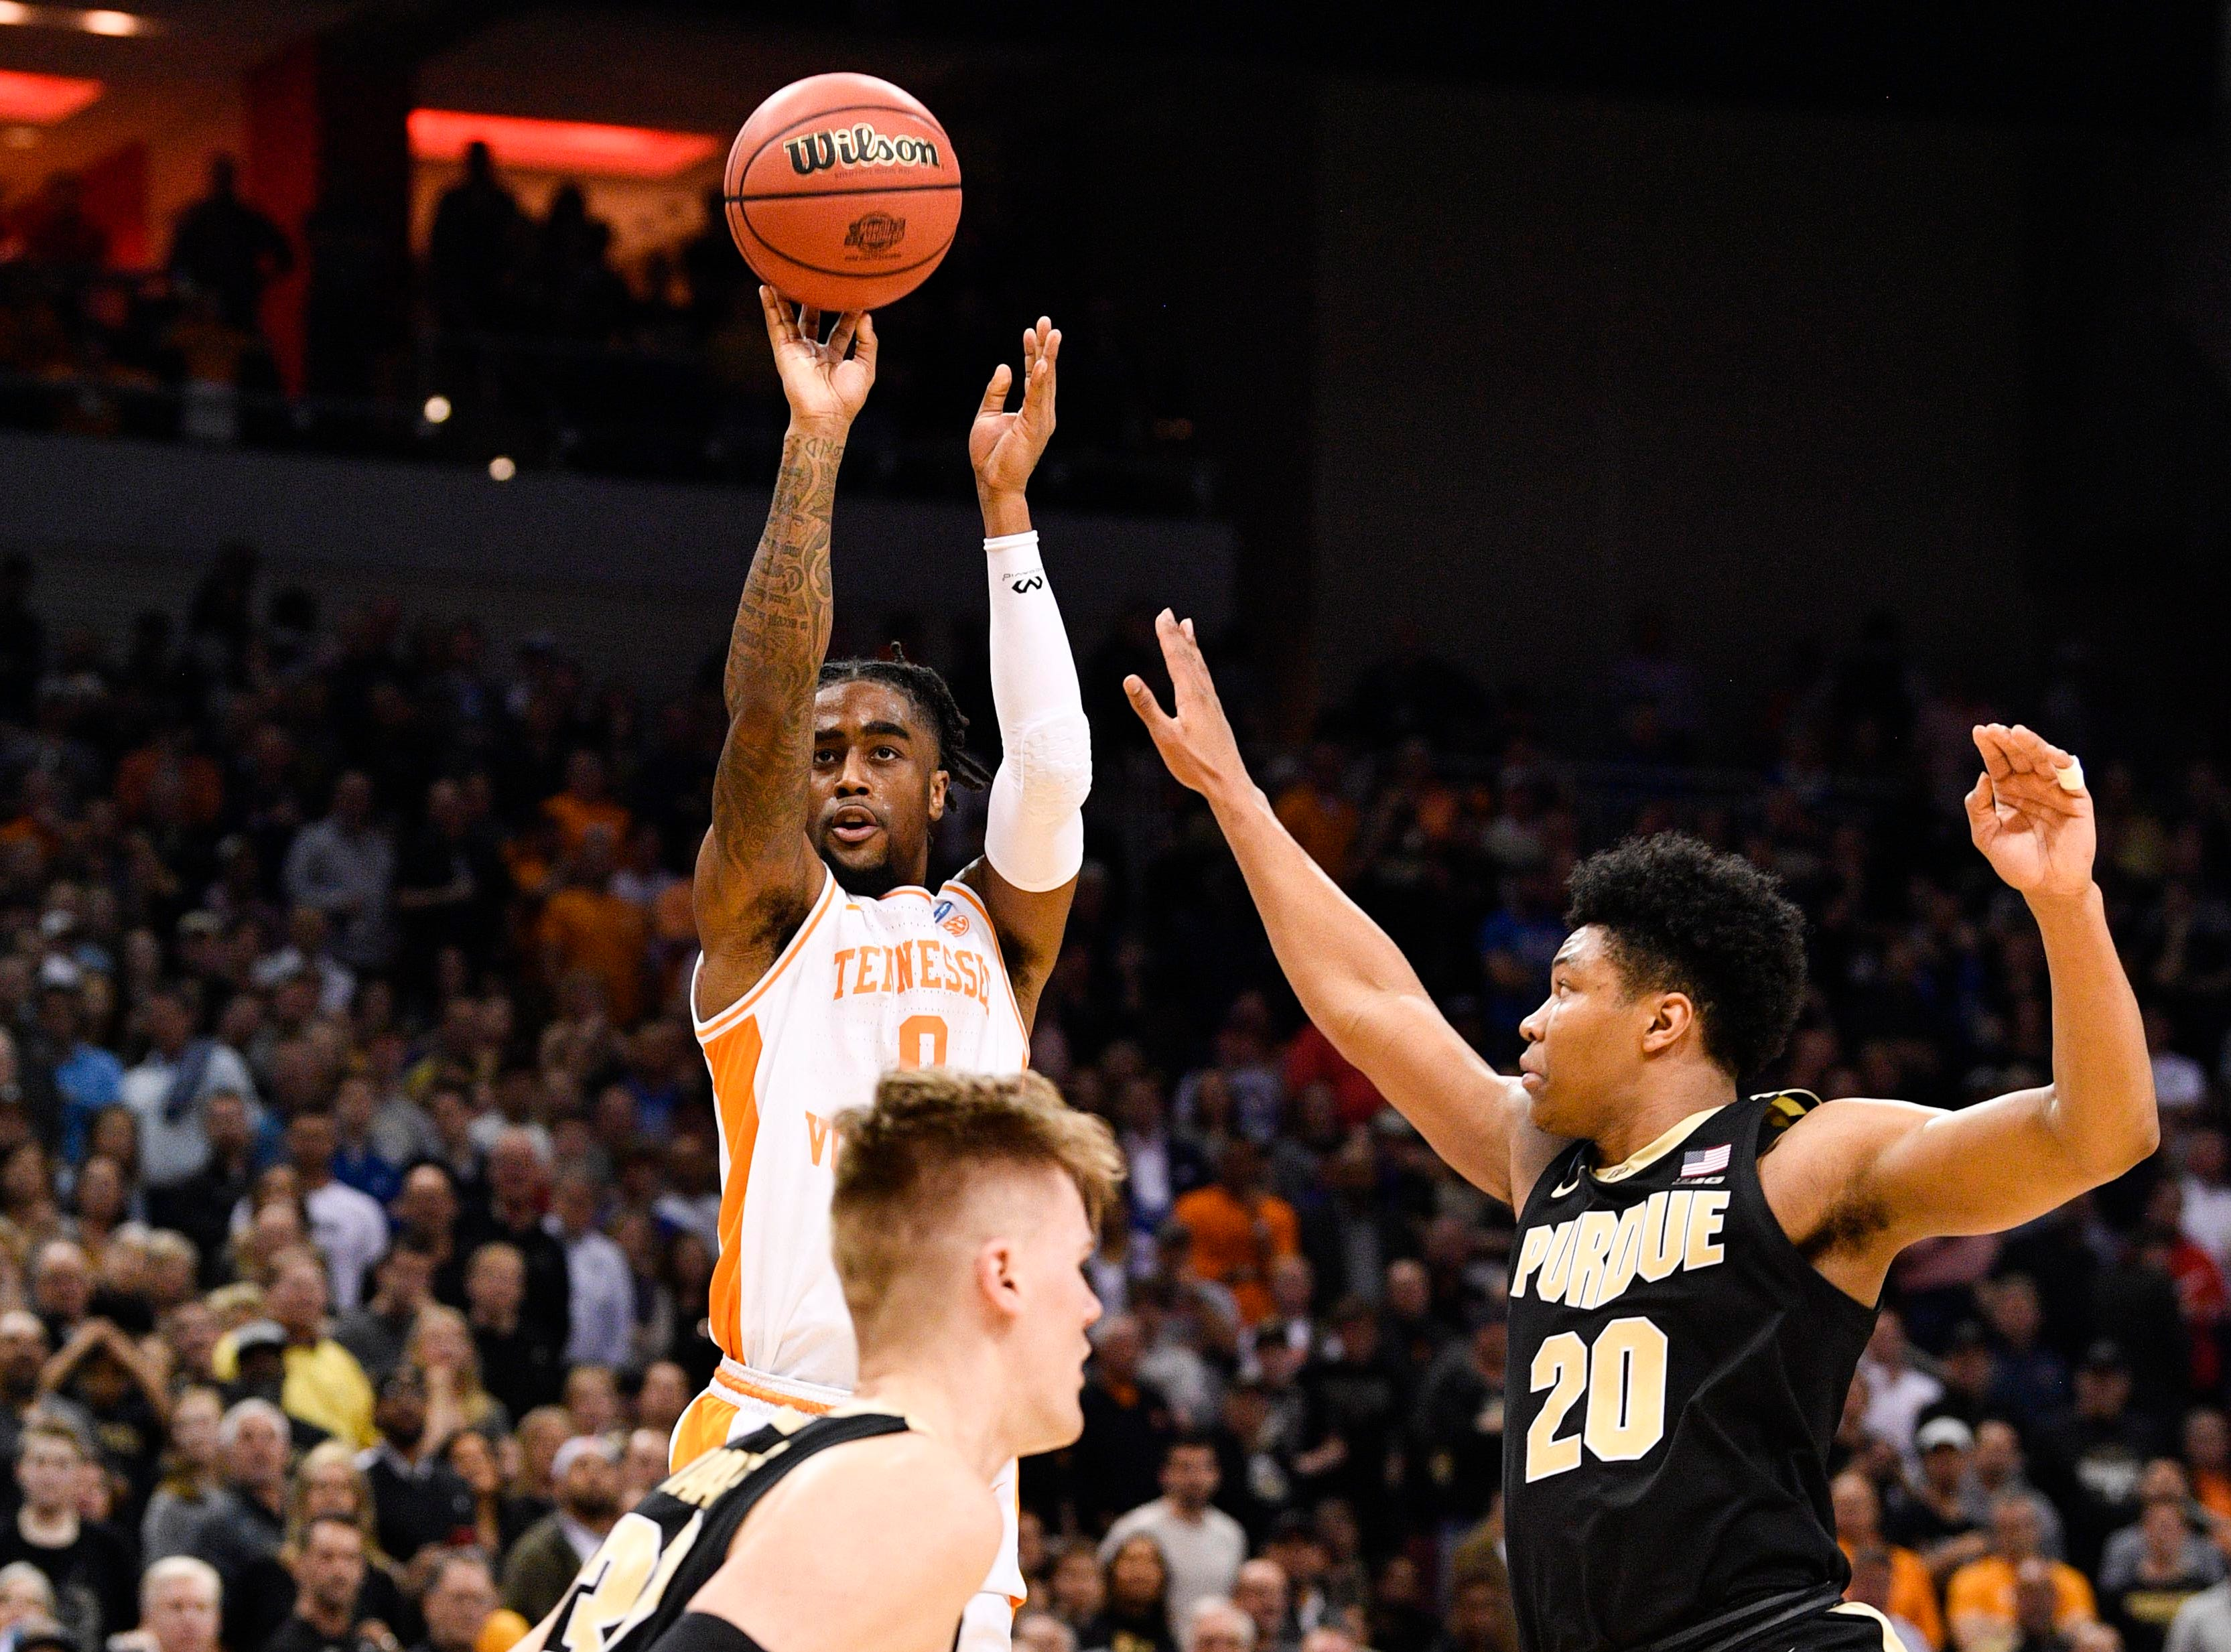 Mar 28, 2019; Louisville, KY, United States; Tennessee Volunteers guard Jordan Bone (0) shoots as Purdue Boilermakers guard Nojel Eastern (20) defends during overtime in the semifinals of the south regional of the 2019 NCAA Tournament at KFC Yum Center. Mandatory Credit: Jamie Rhodes-USA TODAY Sports